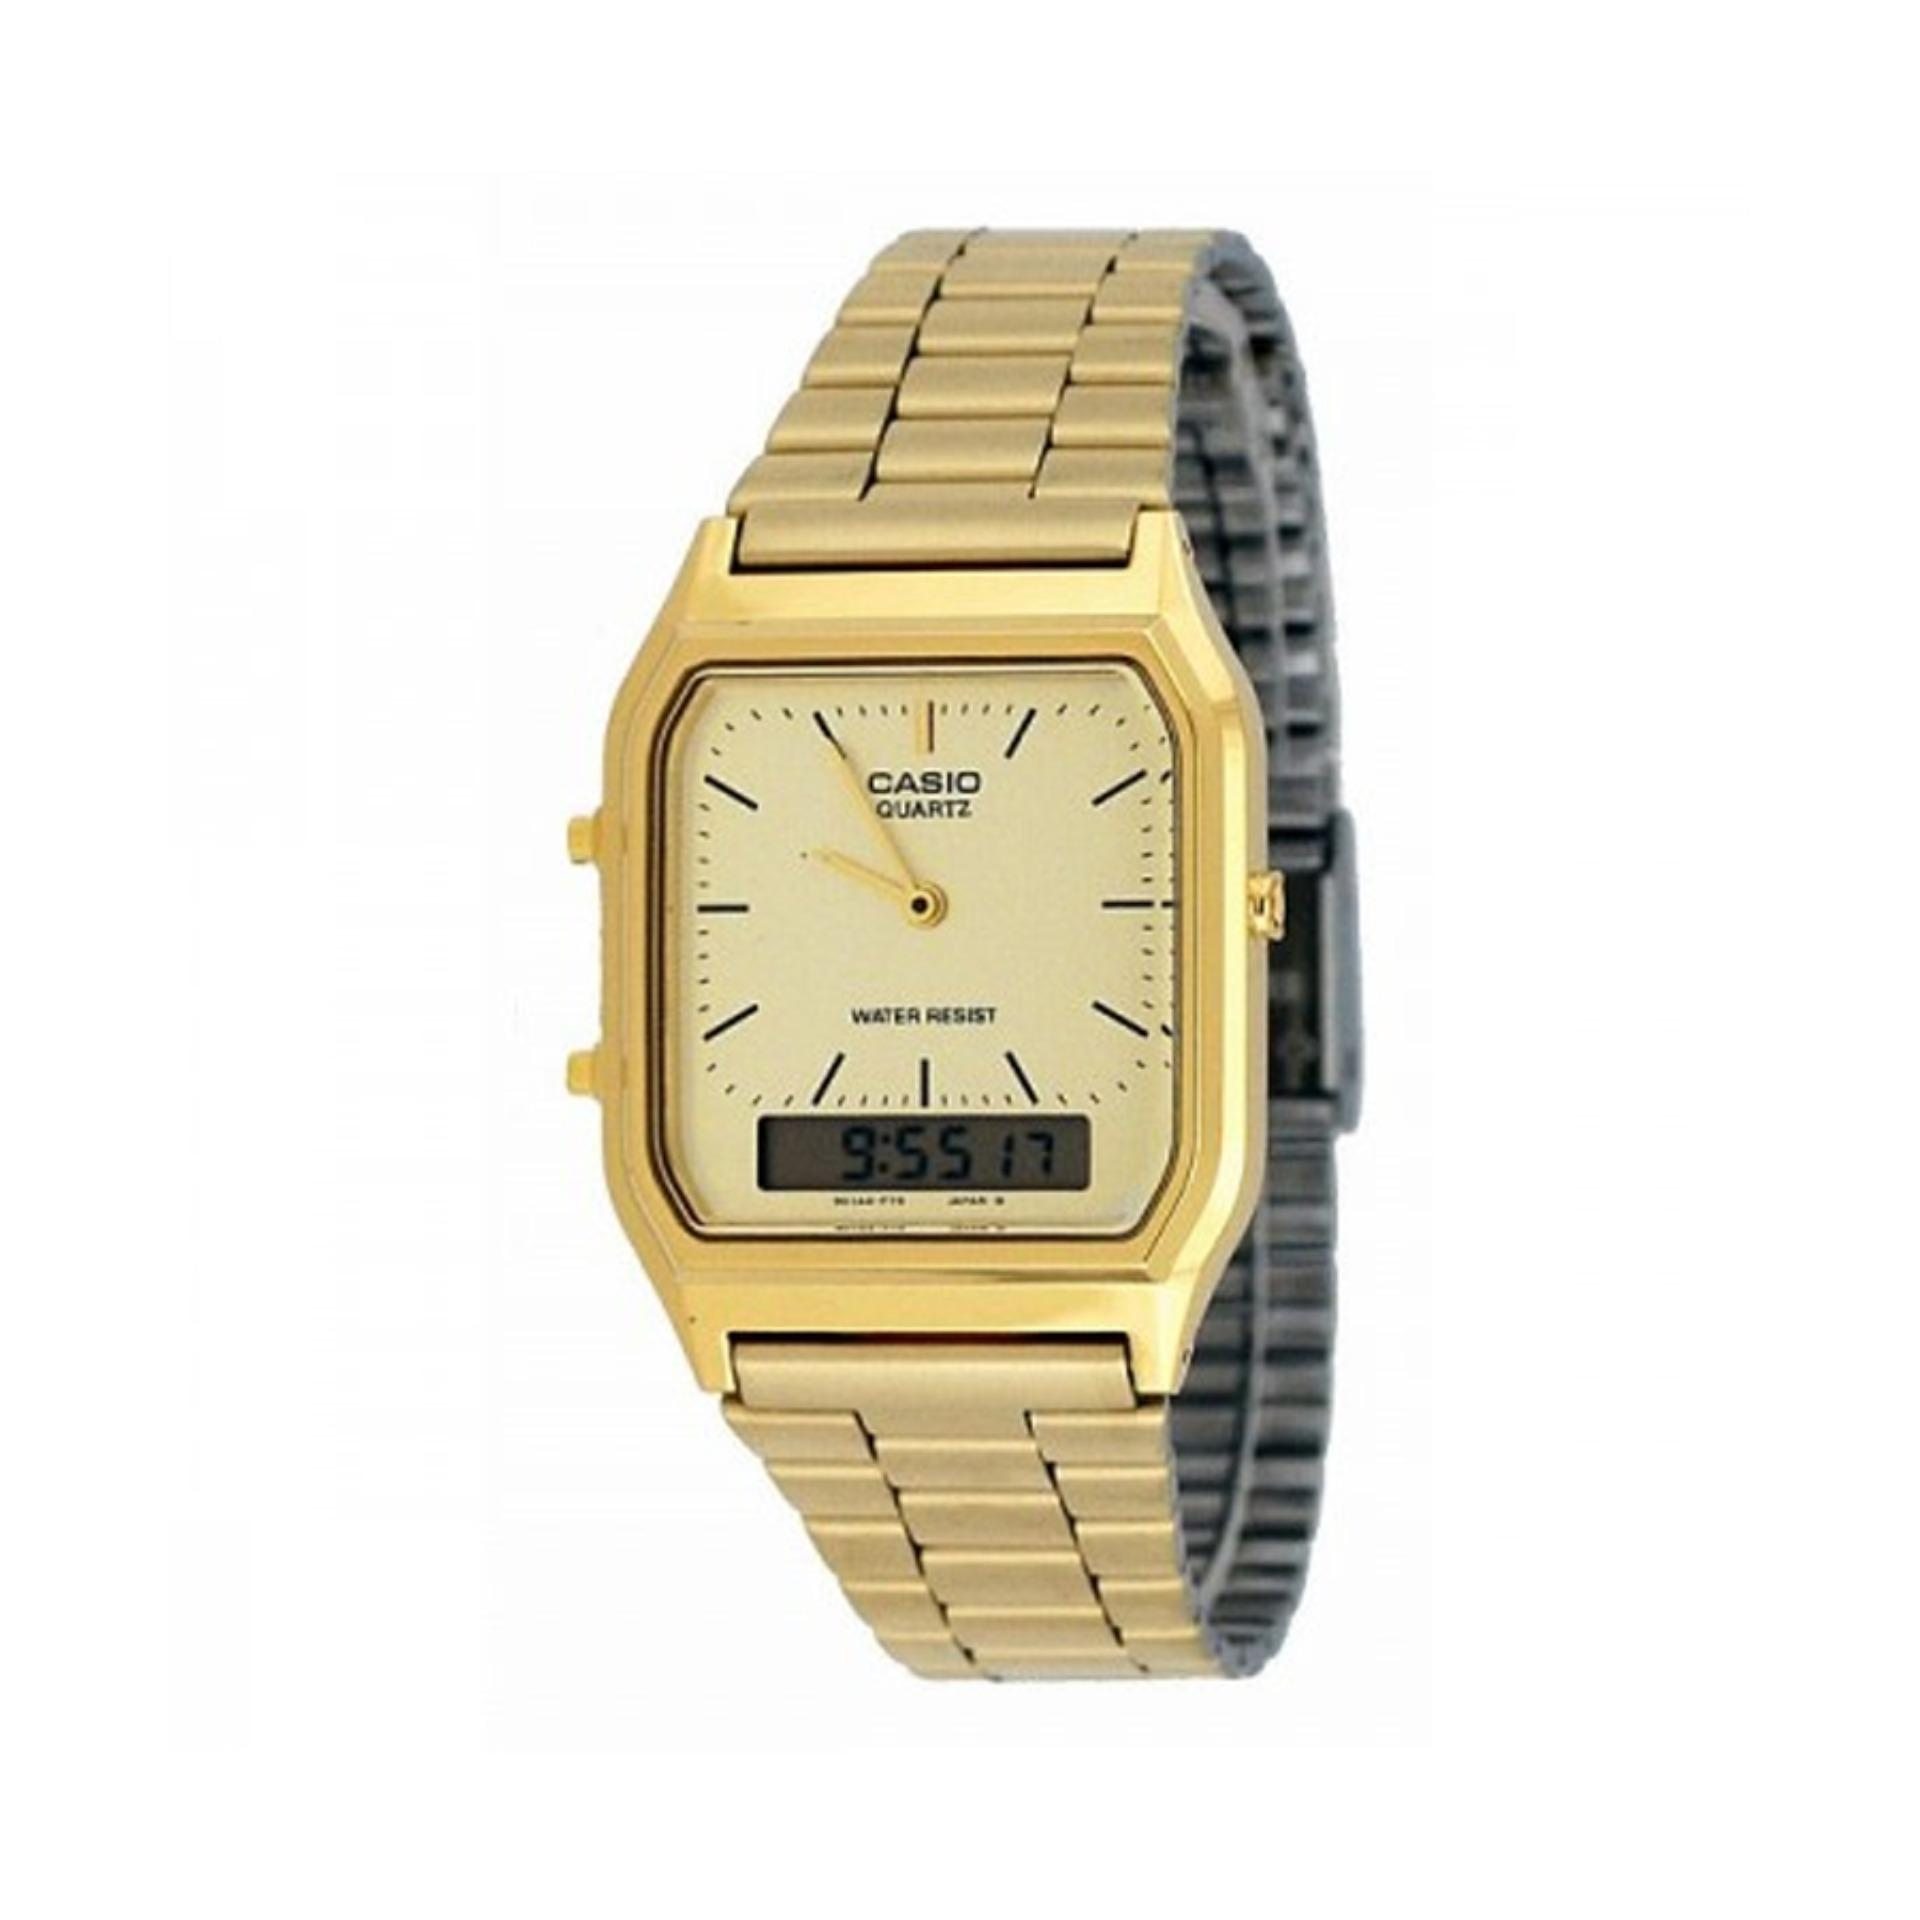 c2d4709d9 Casio Analog Digital Gold Stainless Steel Strap Watch AQ-230GA-9D with 1  year